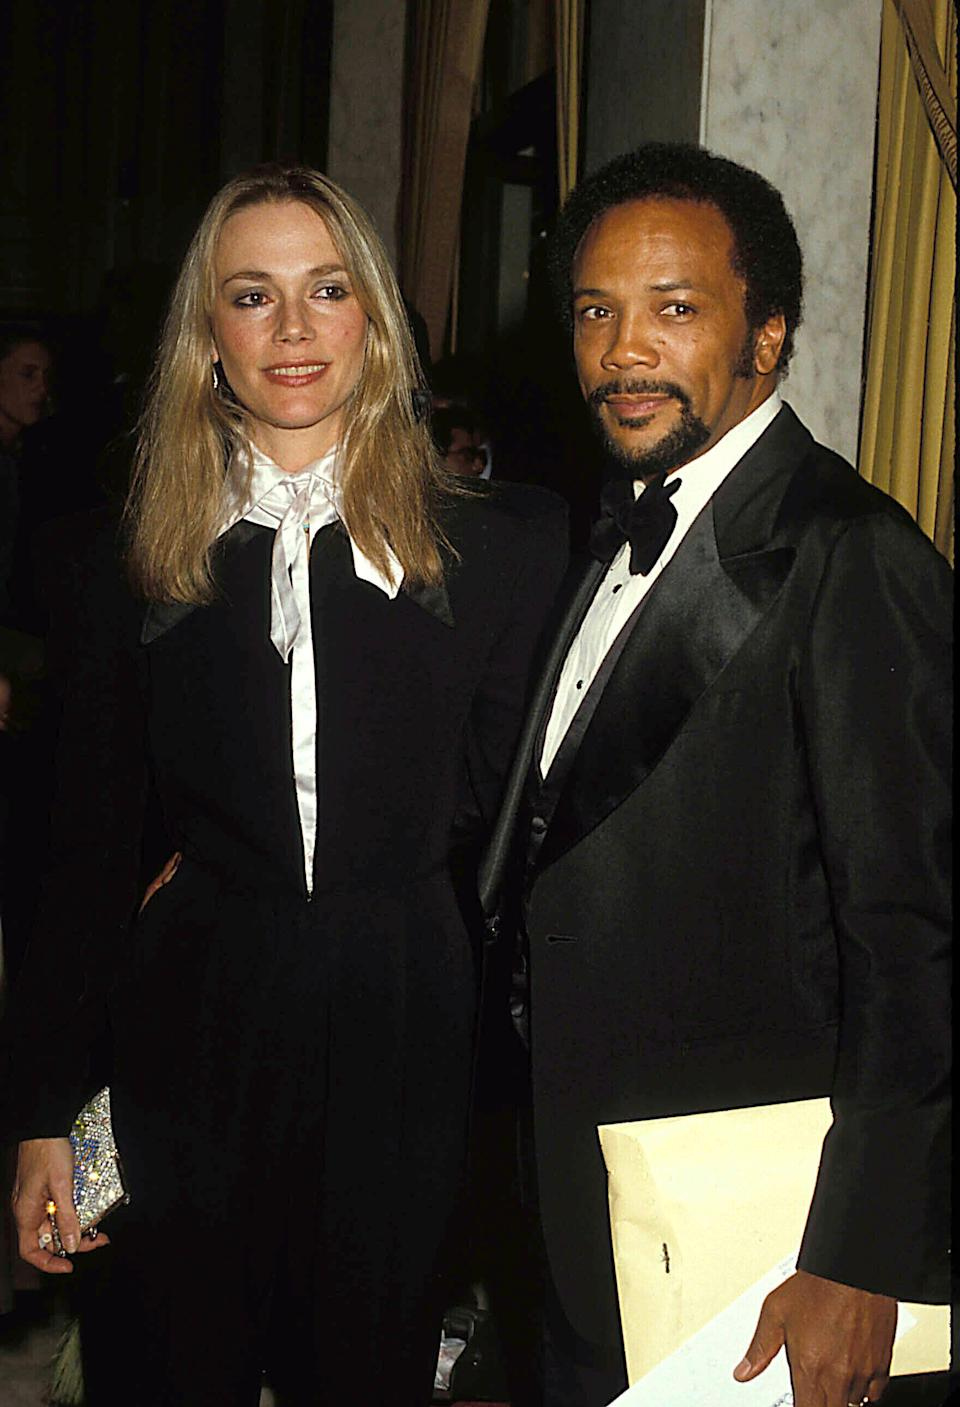 Peggy Lipton And Quincy Jones Pictured In 1980. Credit: 1920480Globe Photos/MediaPunch /IPX